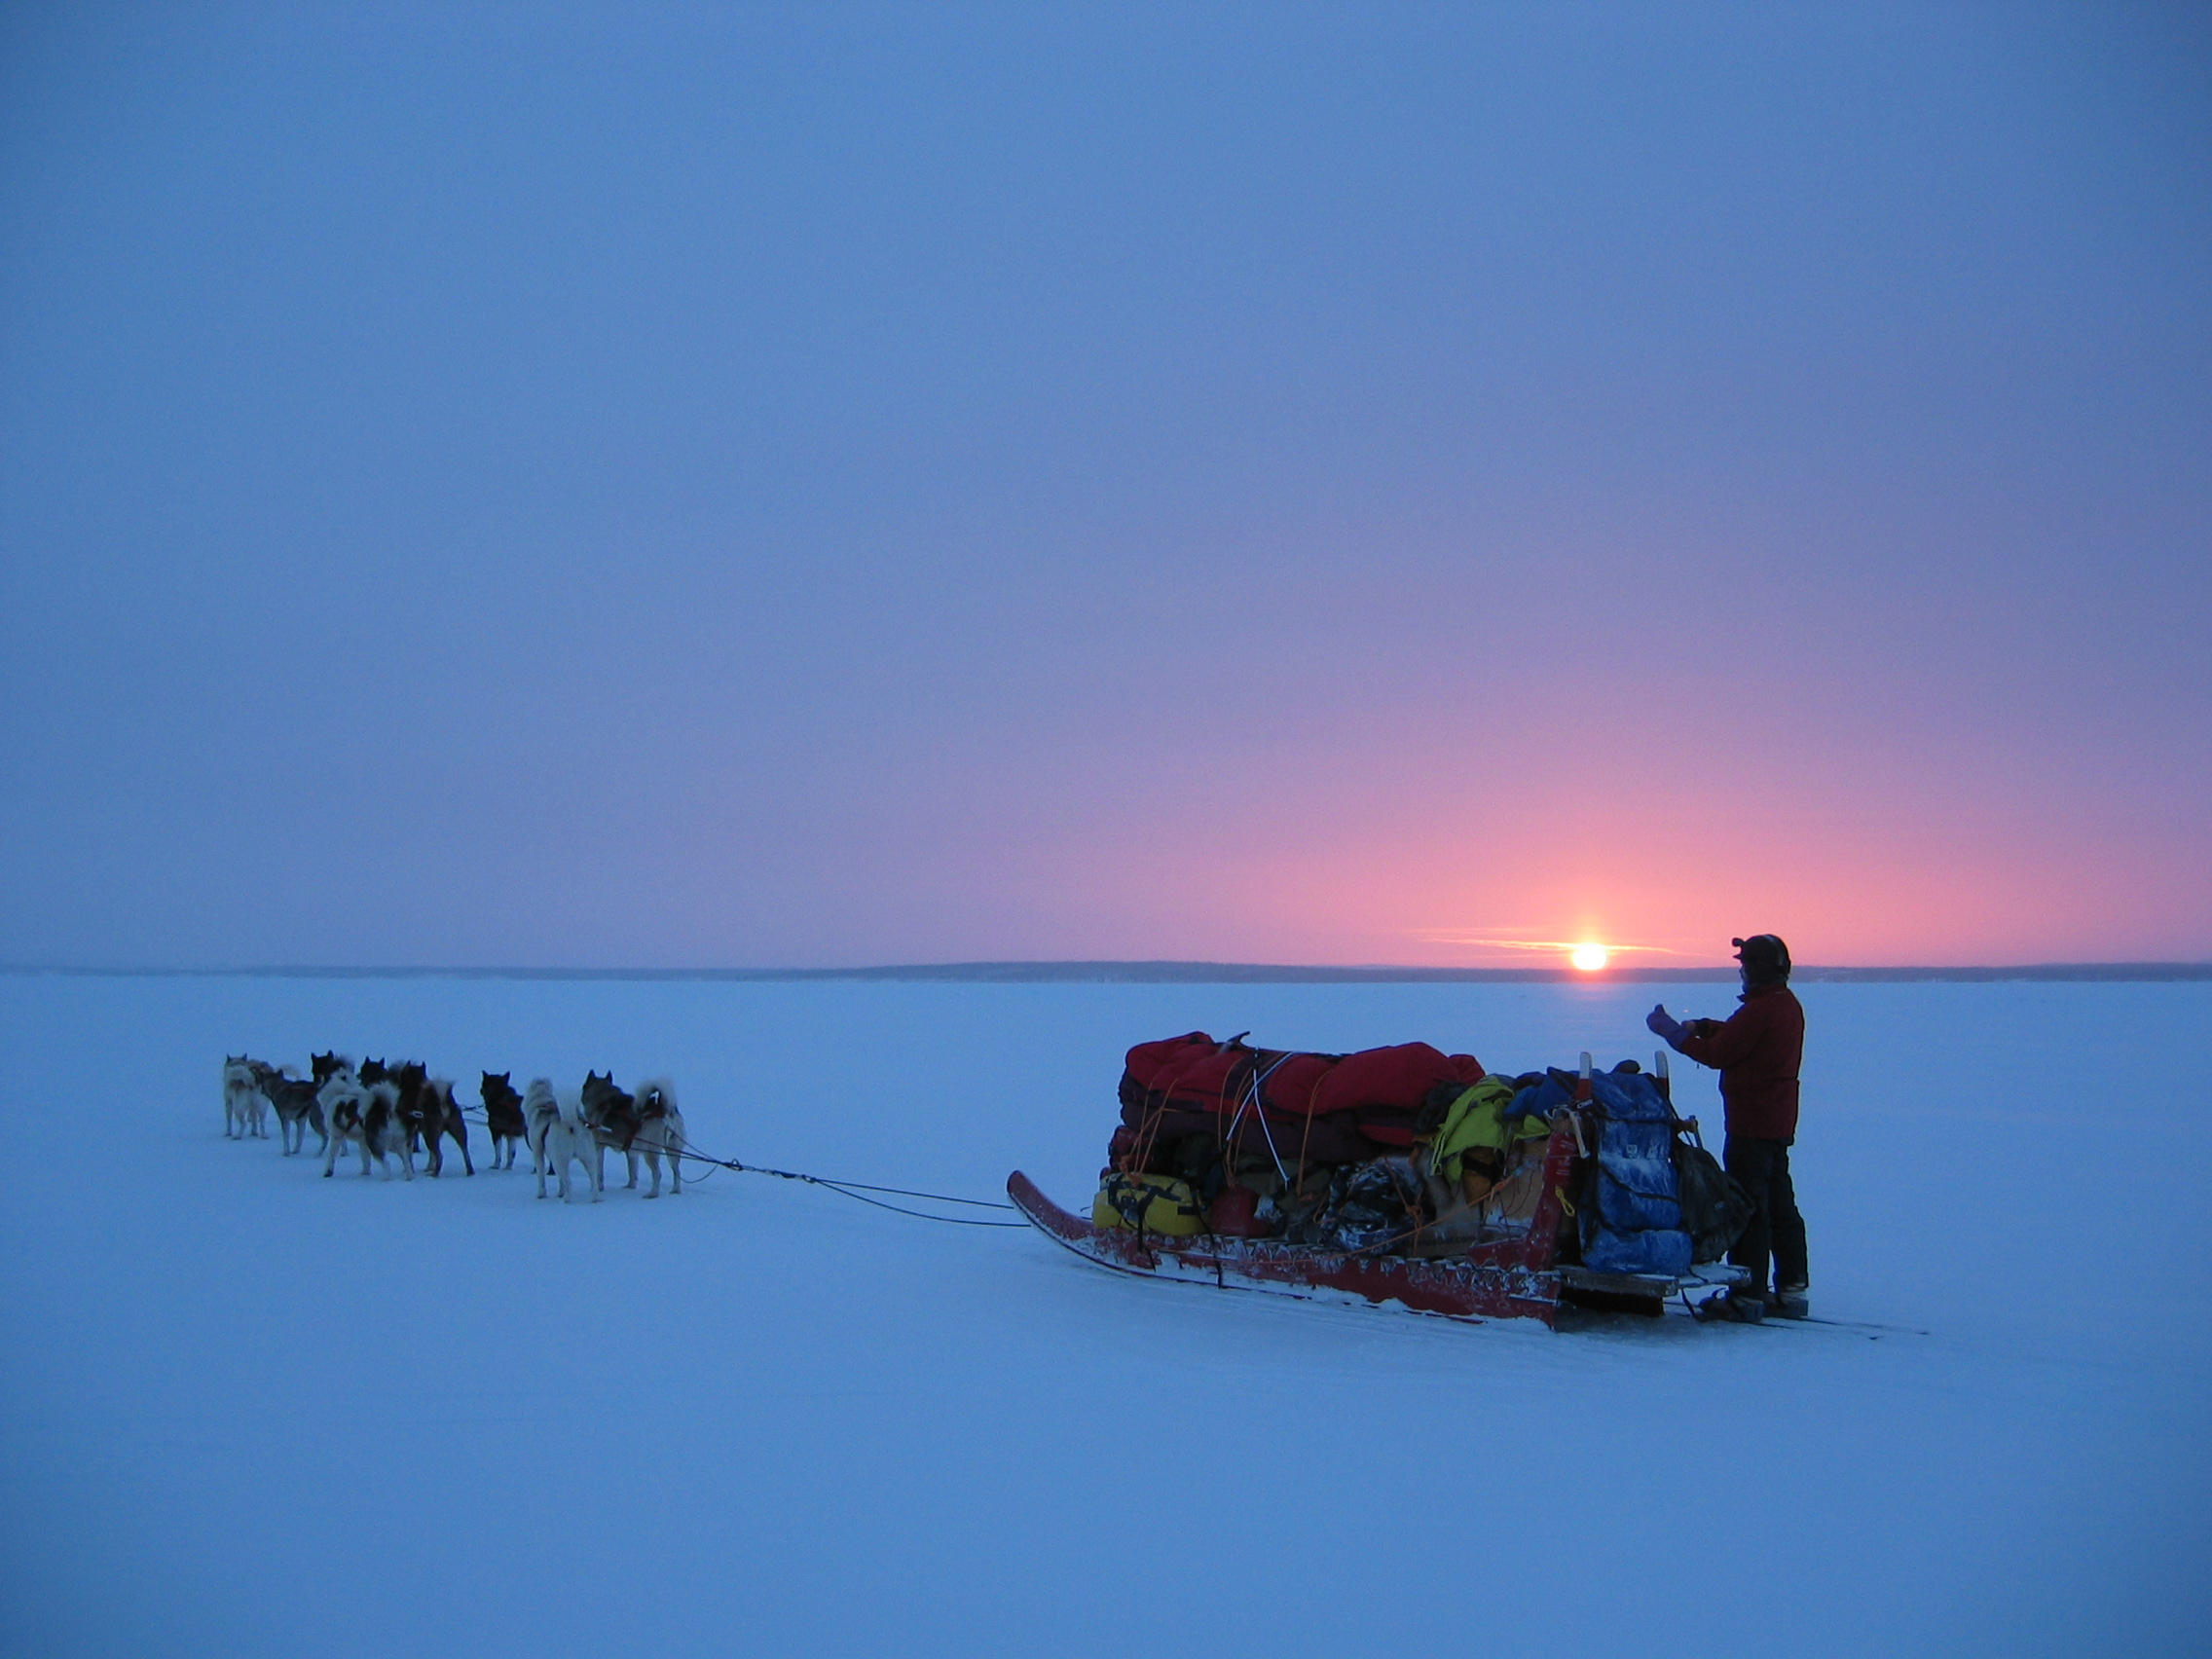 The sled dog team heads out at Sunrise on another Go North! exploratory day.